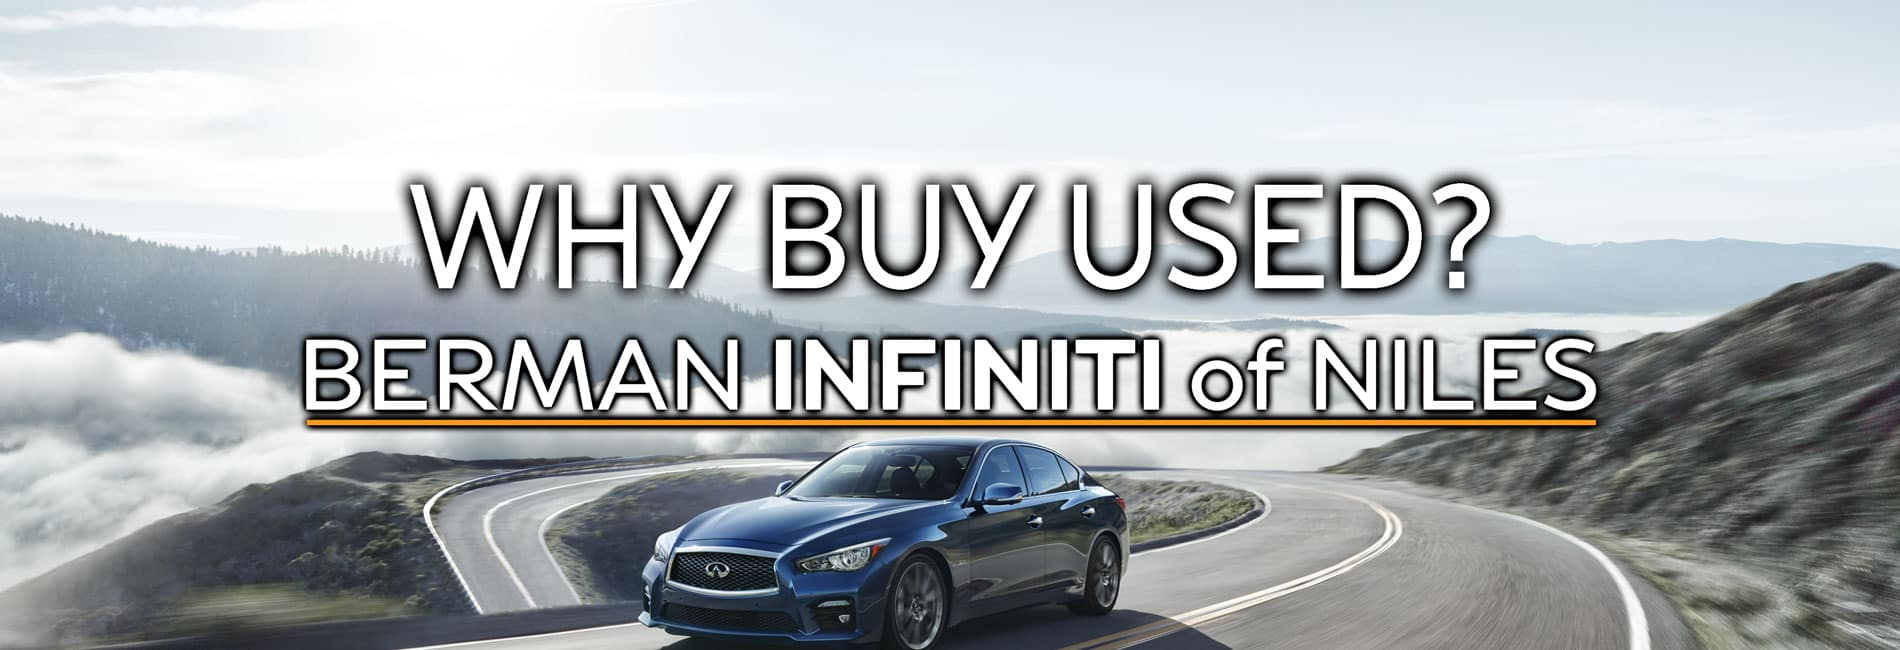 Why Buy Used at Berman INFINITI of Niles